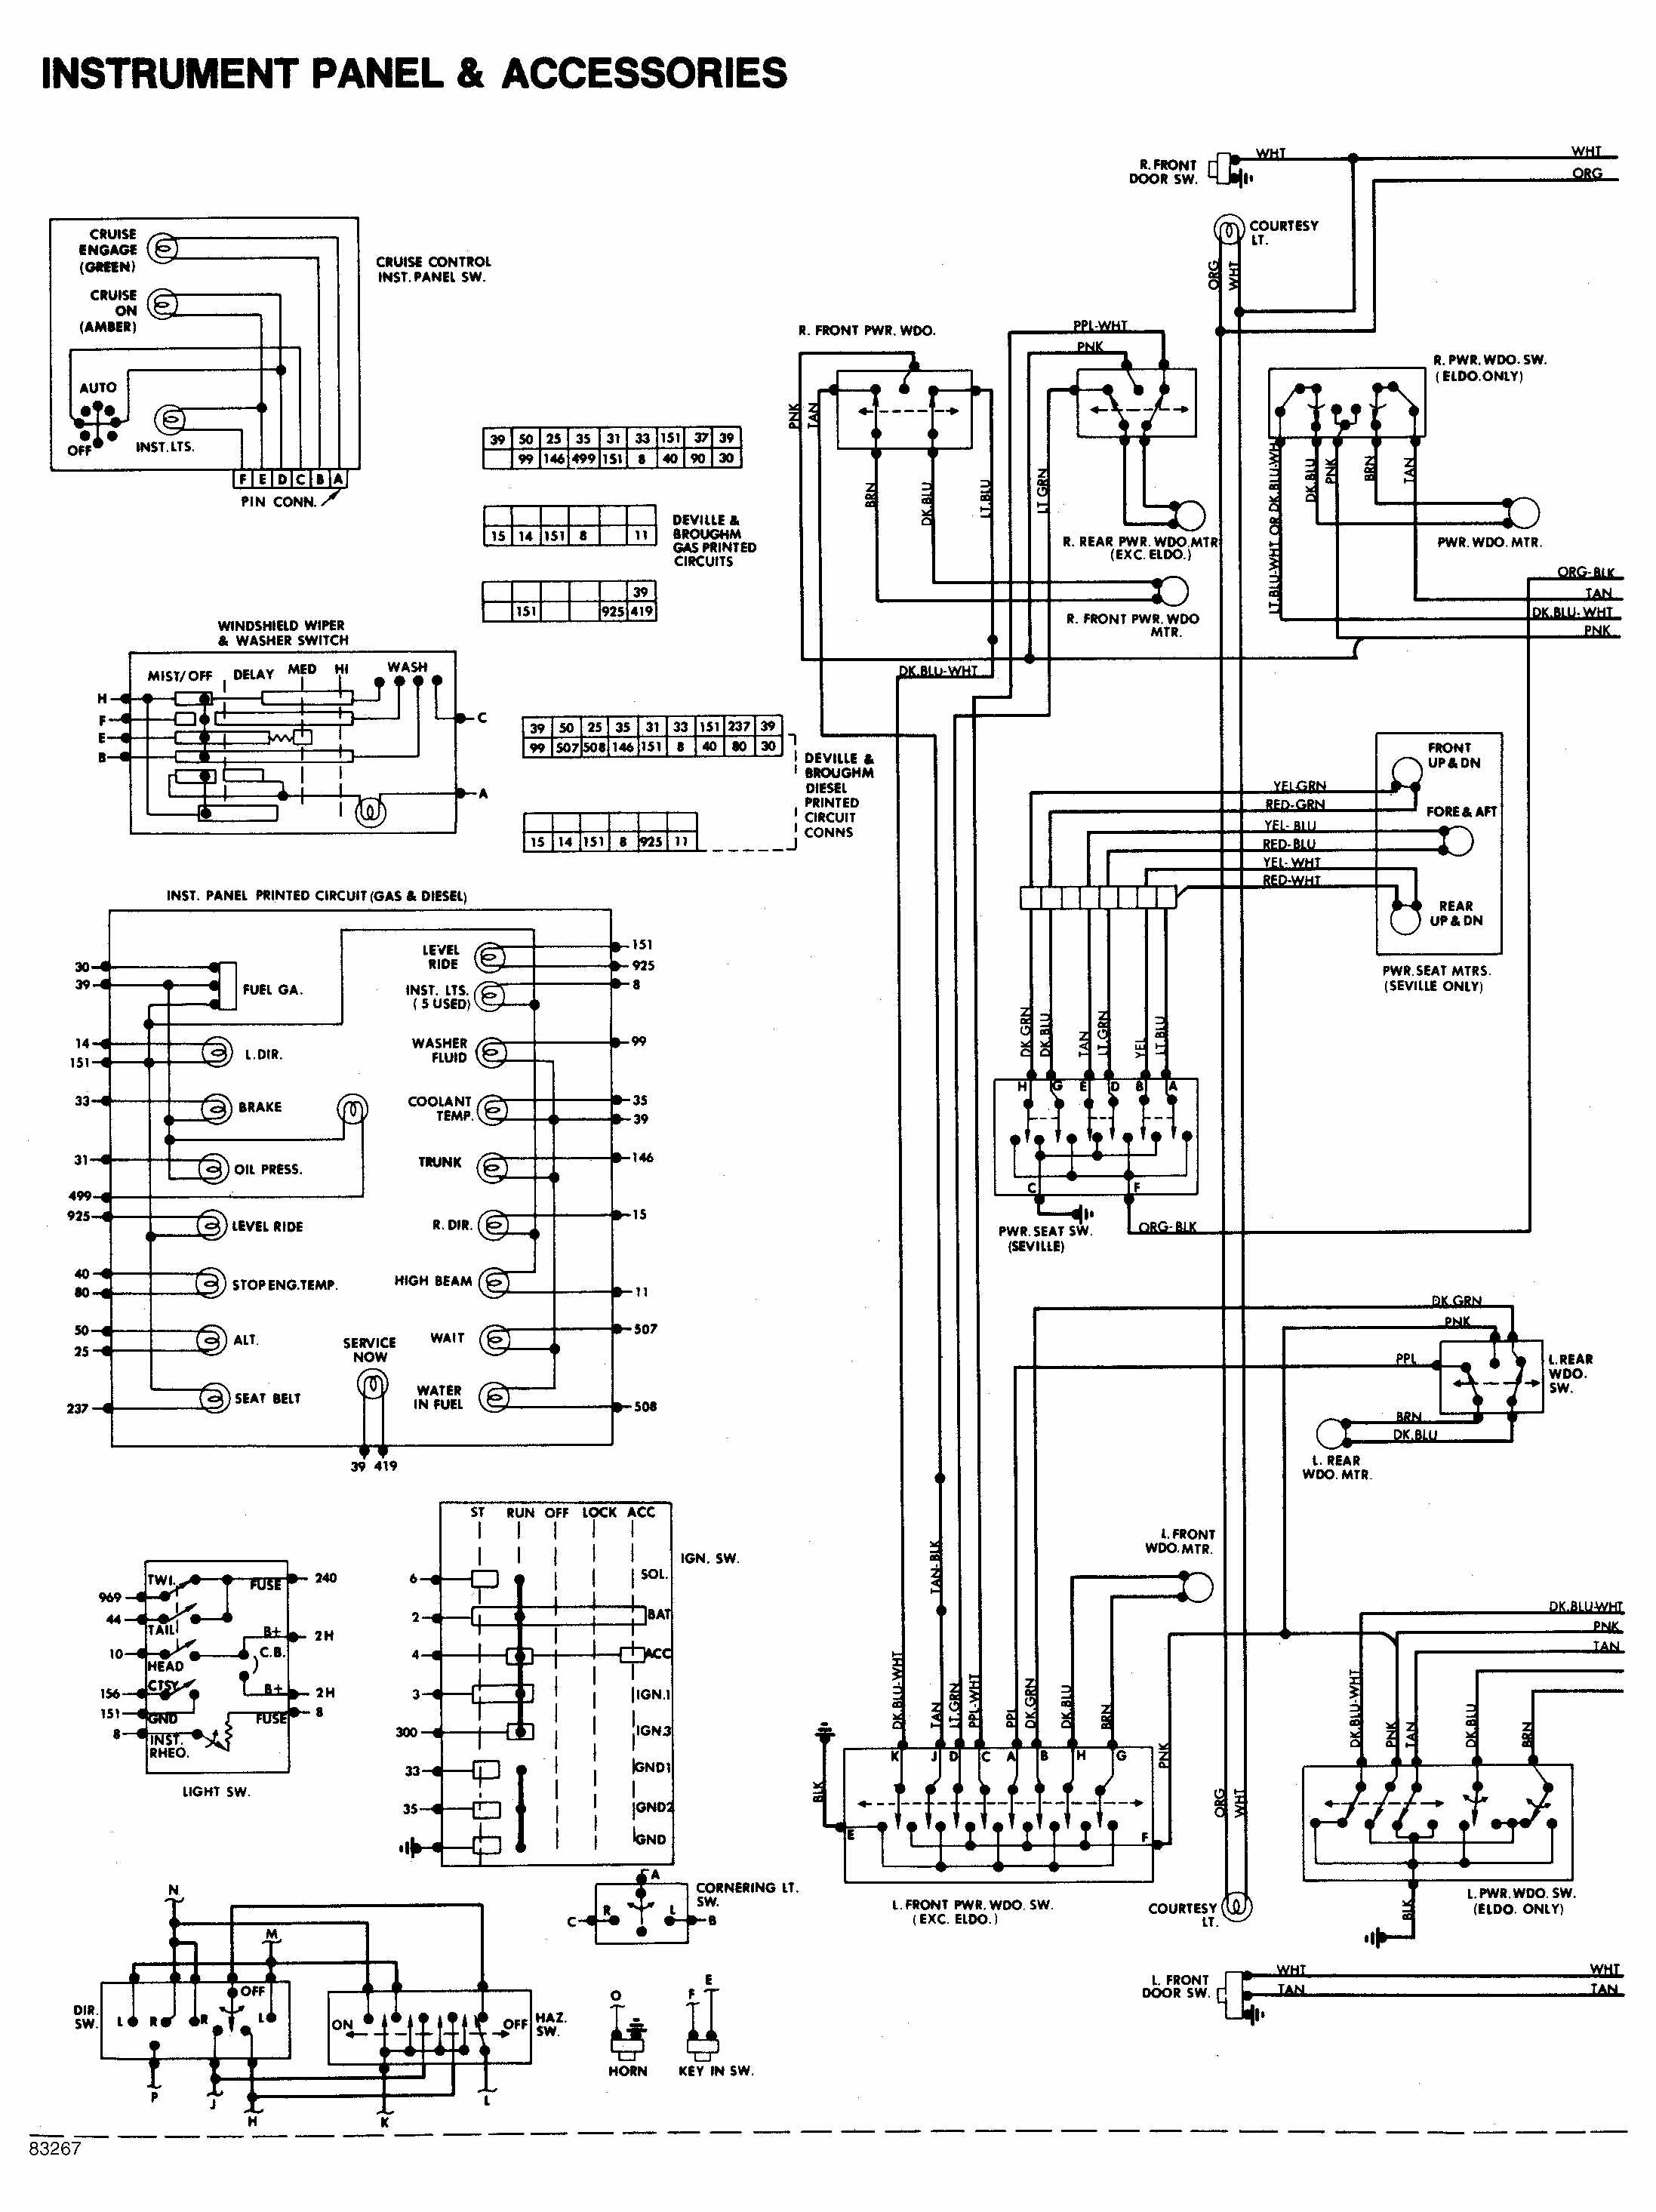 instrument panel and accessories wiring diagram of 1984 cadillac deville 2000 corvette wiring diagram on 2000 download wirning diagrams 2000 C5 Corvette Wiring Diagram at fashall.co